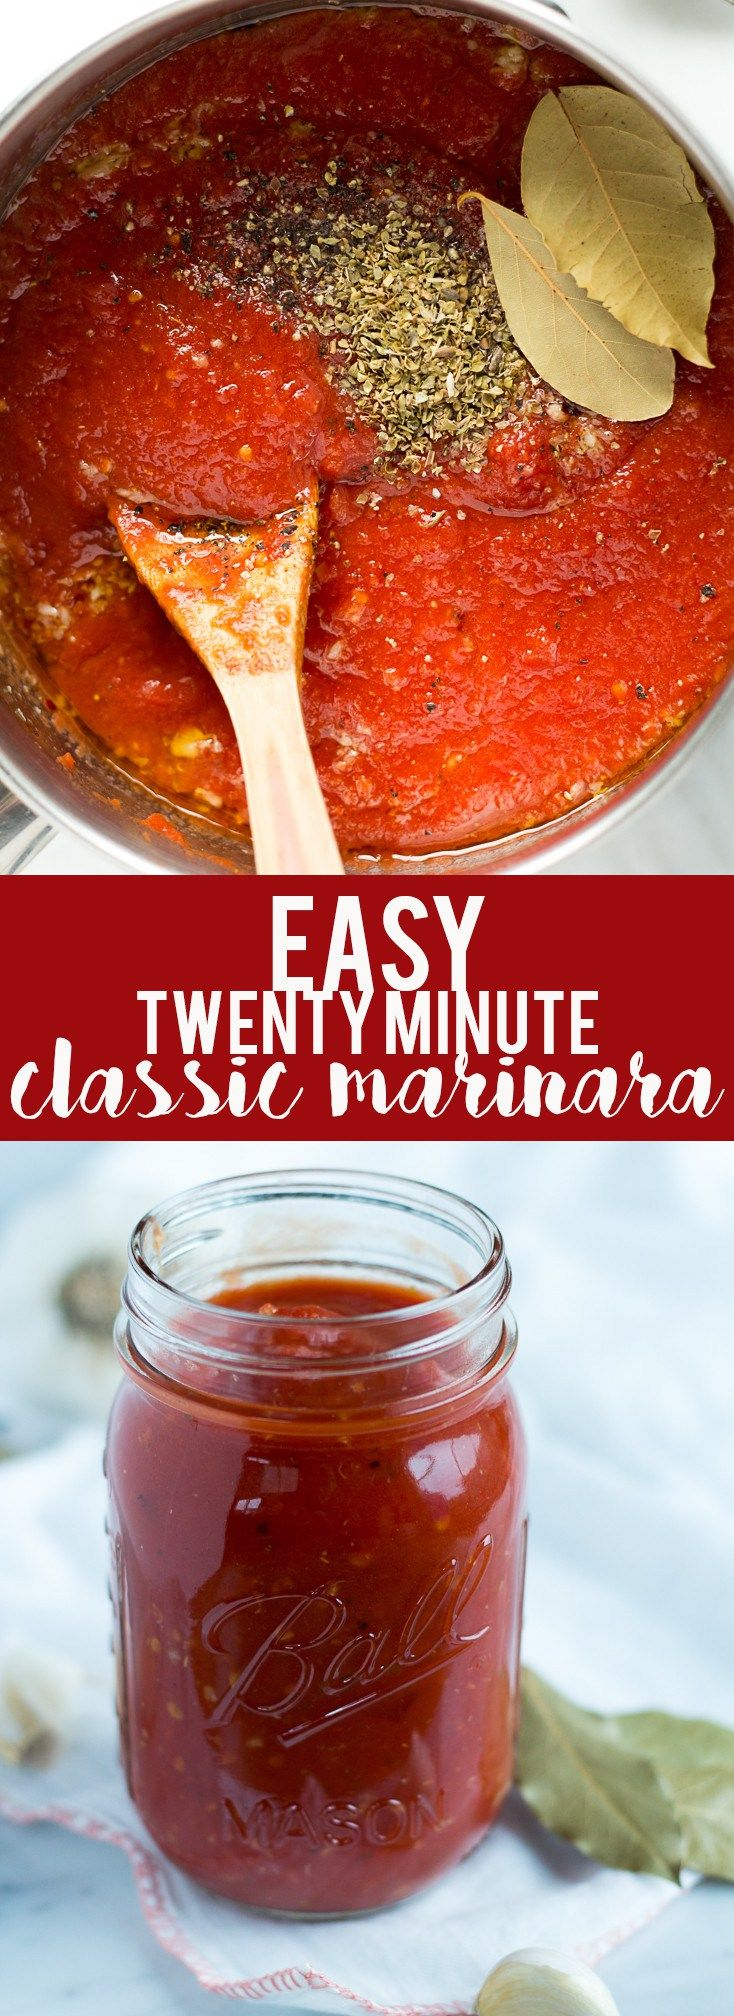 This super quick and easy classic marinara sauce takes twenty minutes to make and uses pantry staples that you probably have on hand now. Great for a weeknight meal with pasta pizza or spaghetti squash!